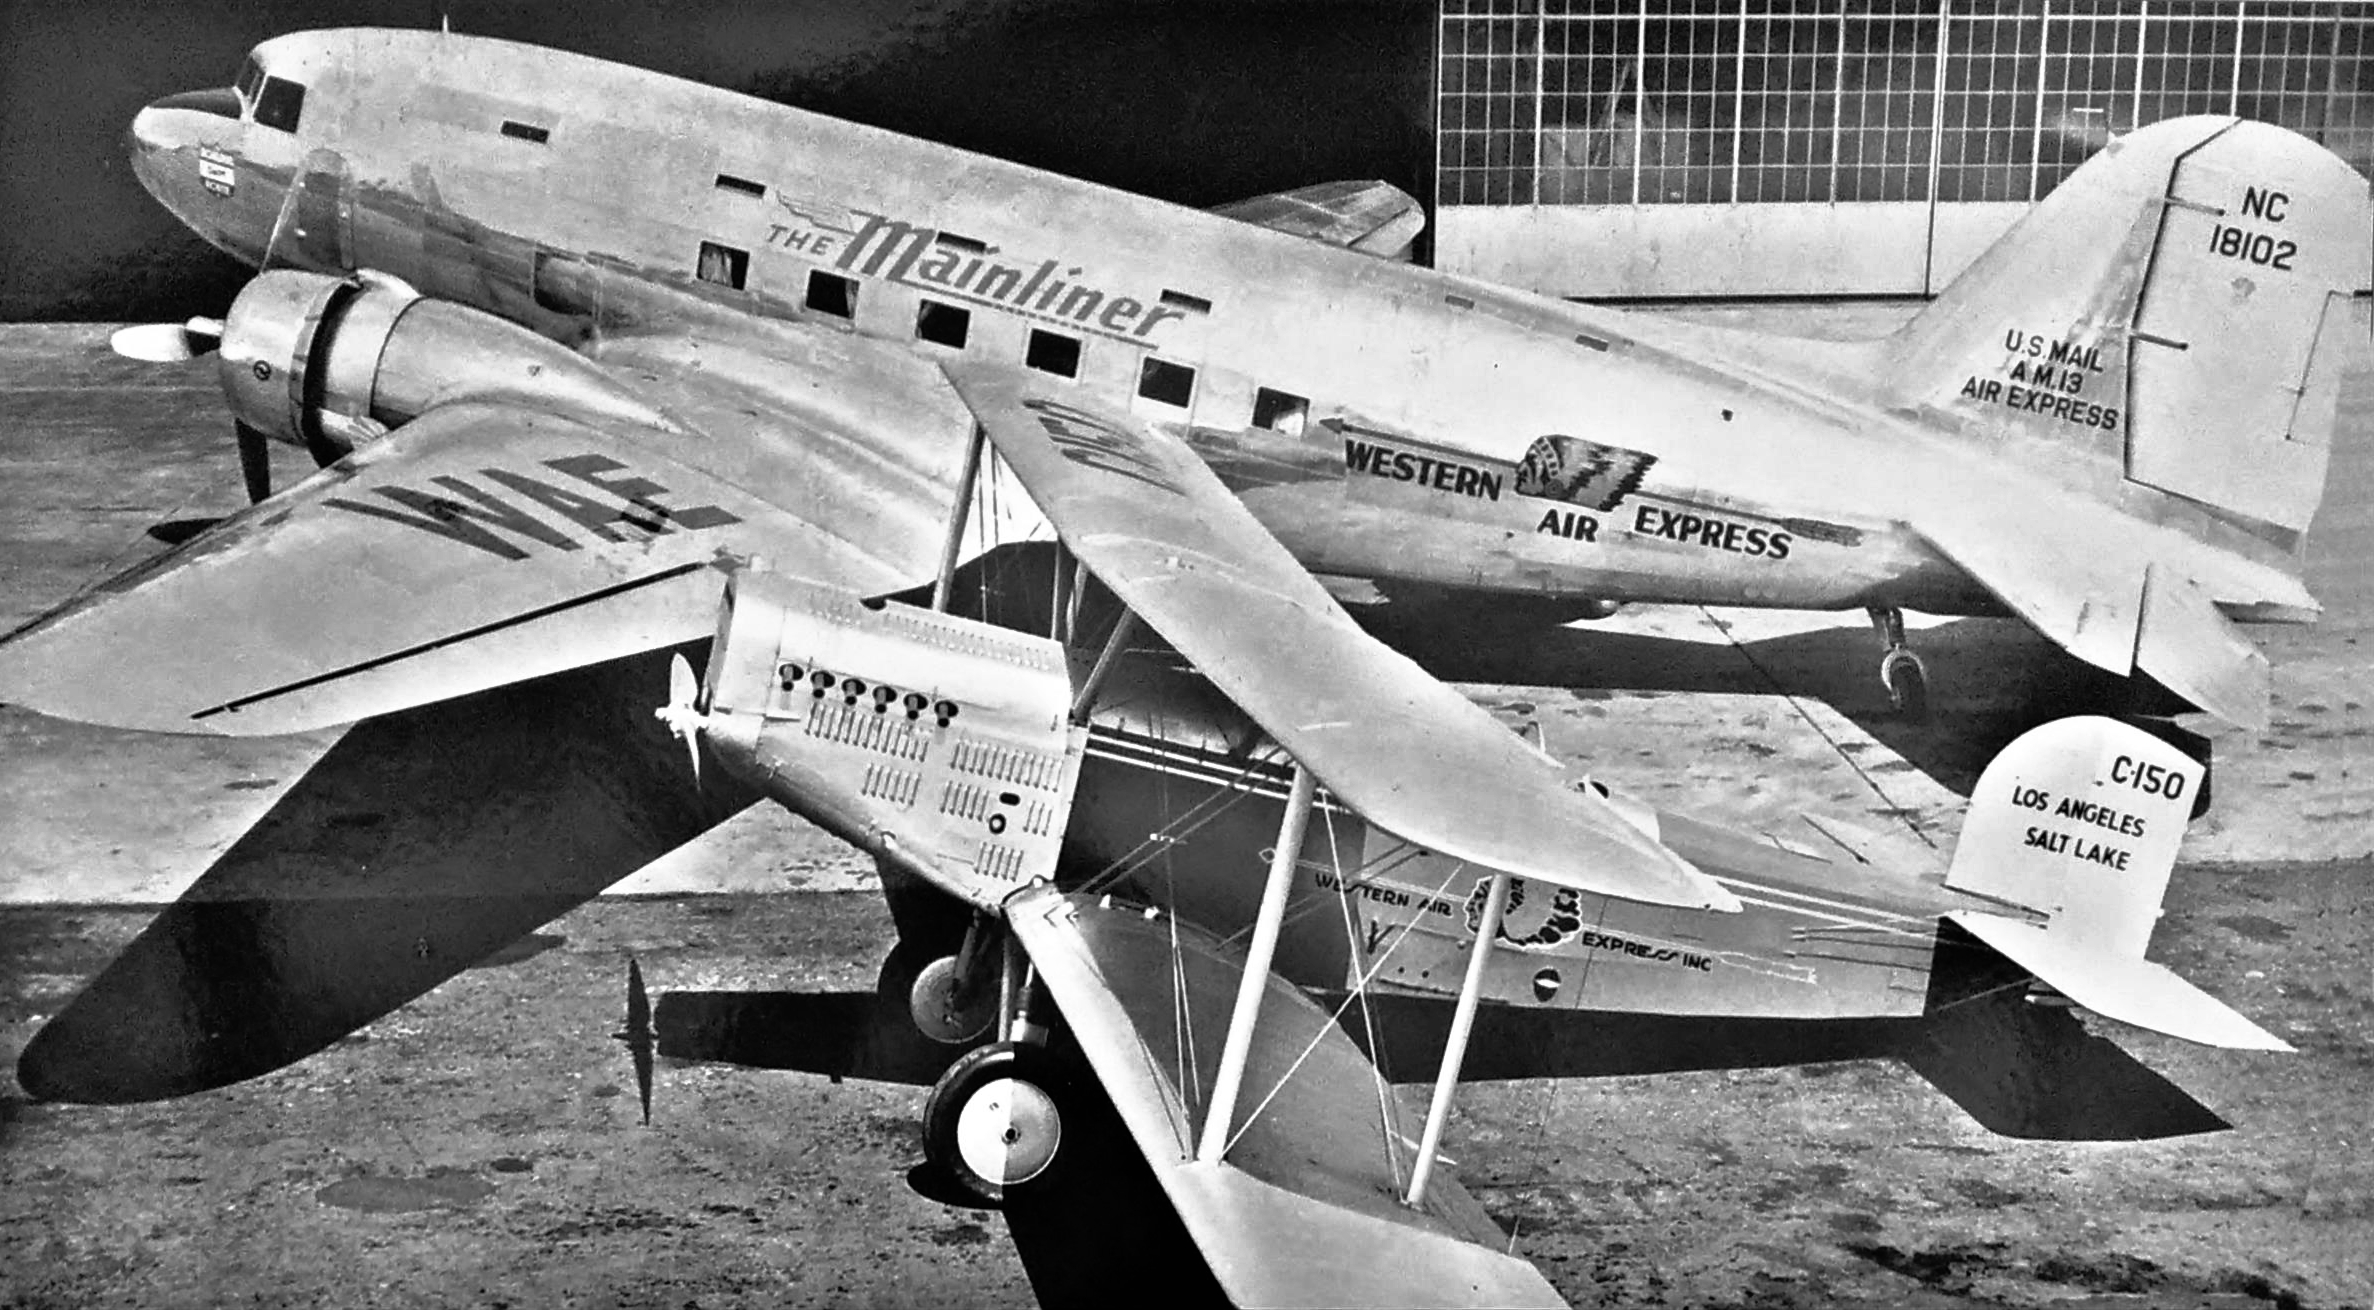 Perhaps the most famous Douglas aircraft, the DC-3,  with a Douglas M-2 mail plane.  (San Diego Air & Space Museum)